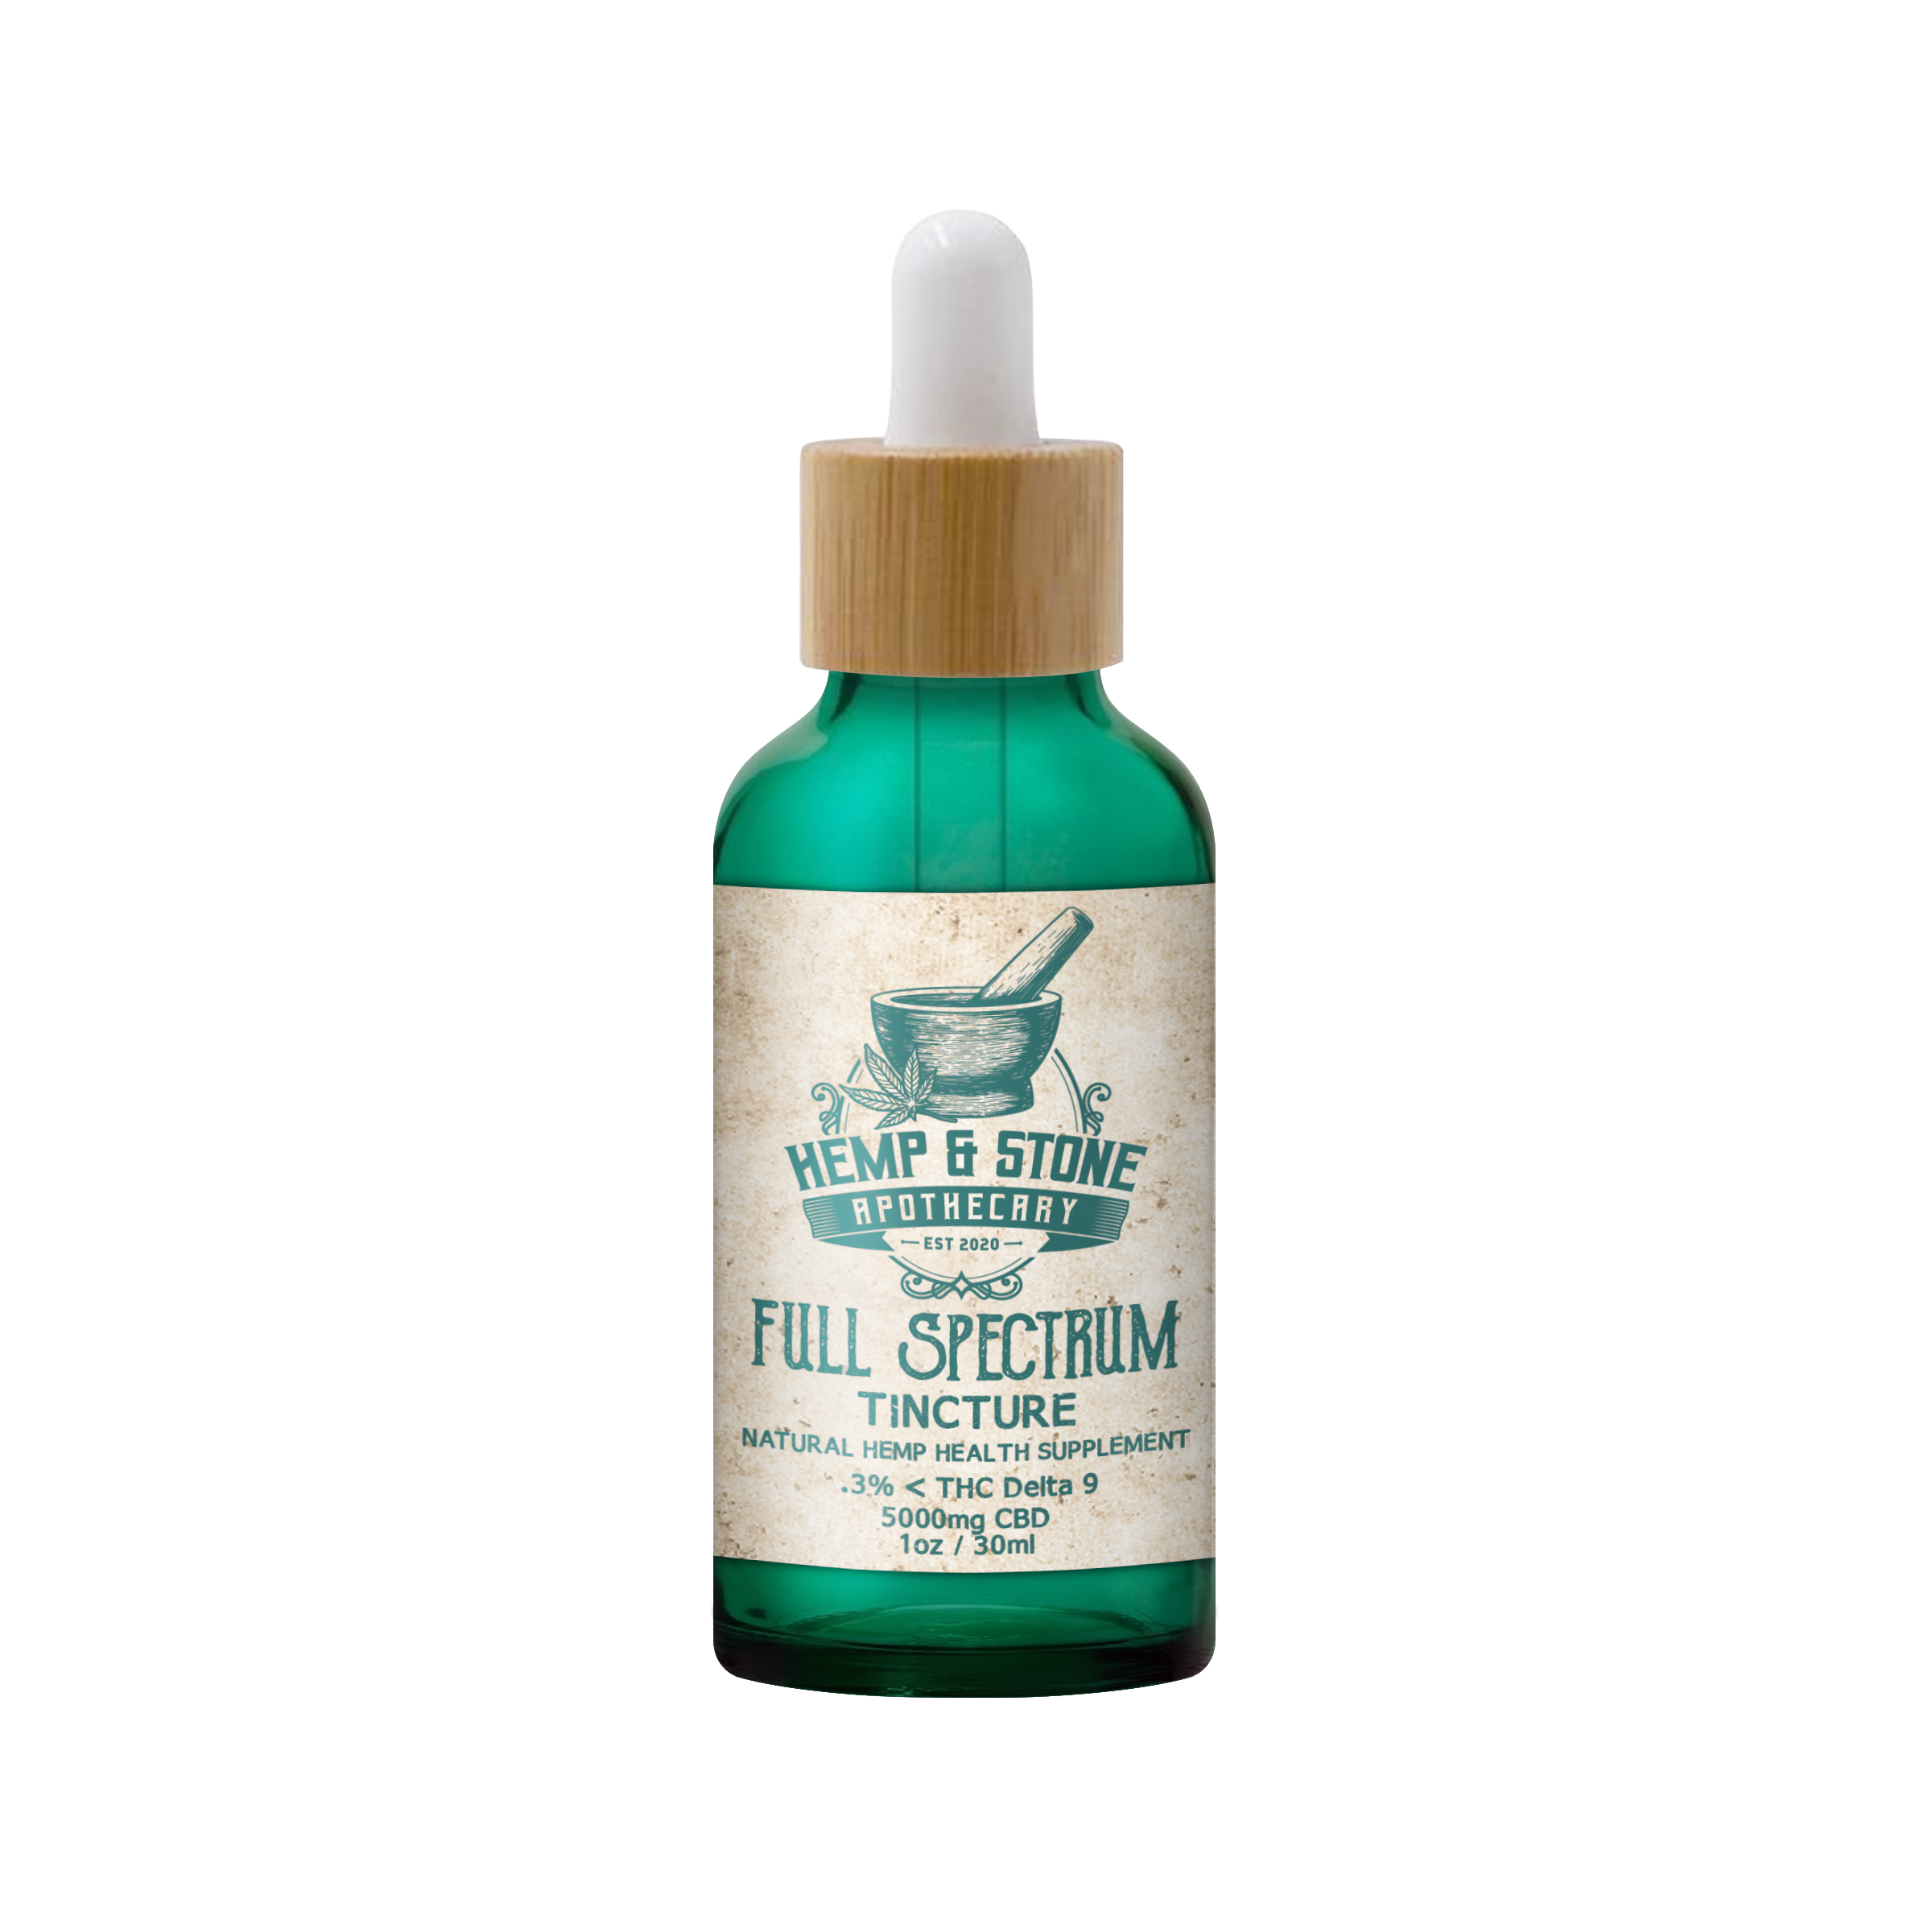 Hemp & Stone Apothecary Full Spectrum CBD Tincture 5000mg